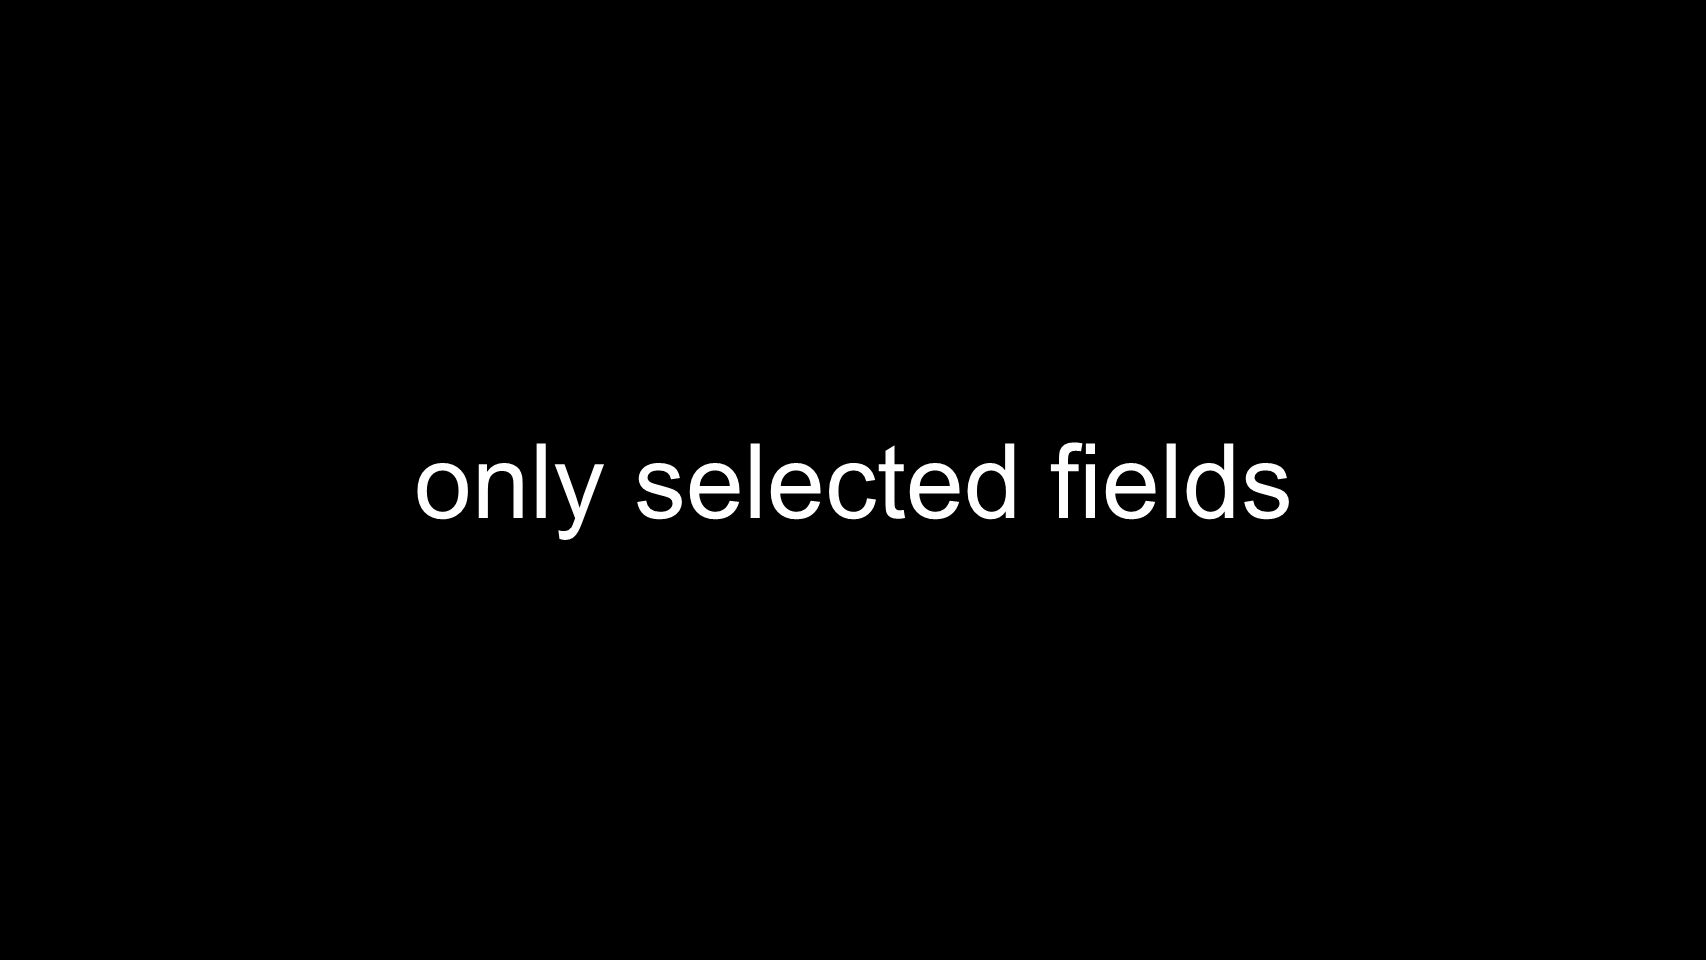 only selected fields